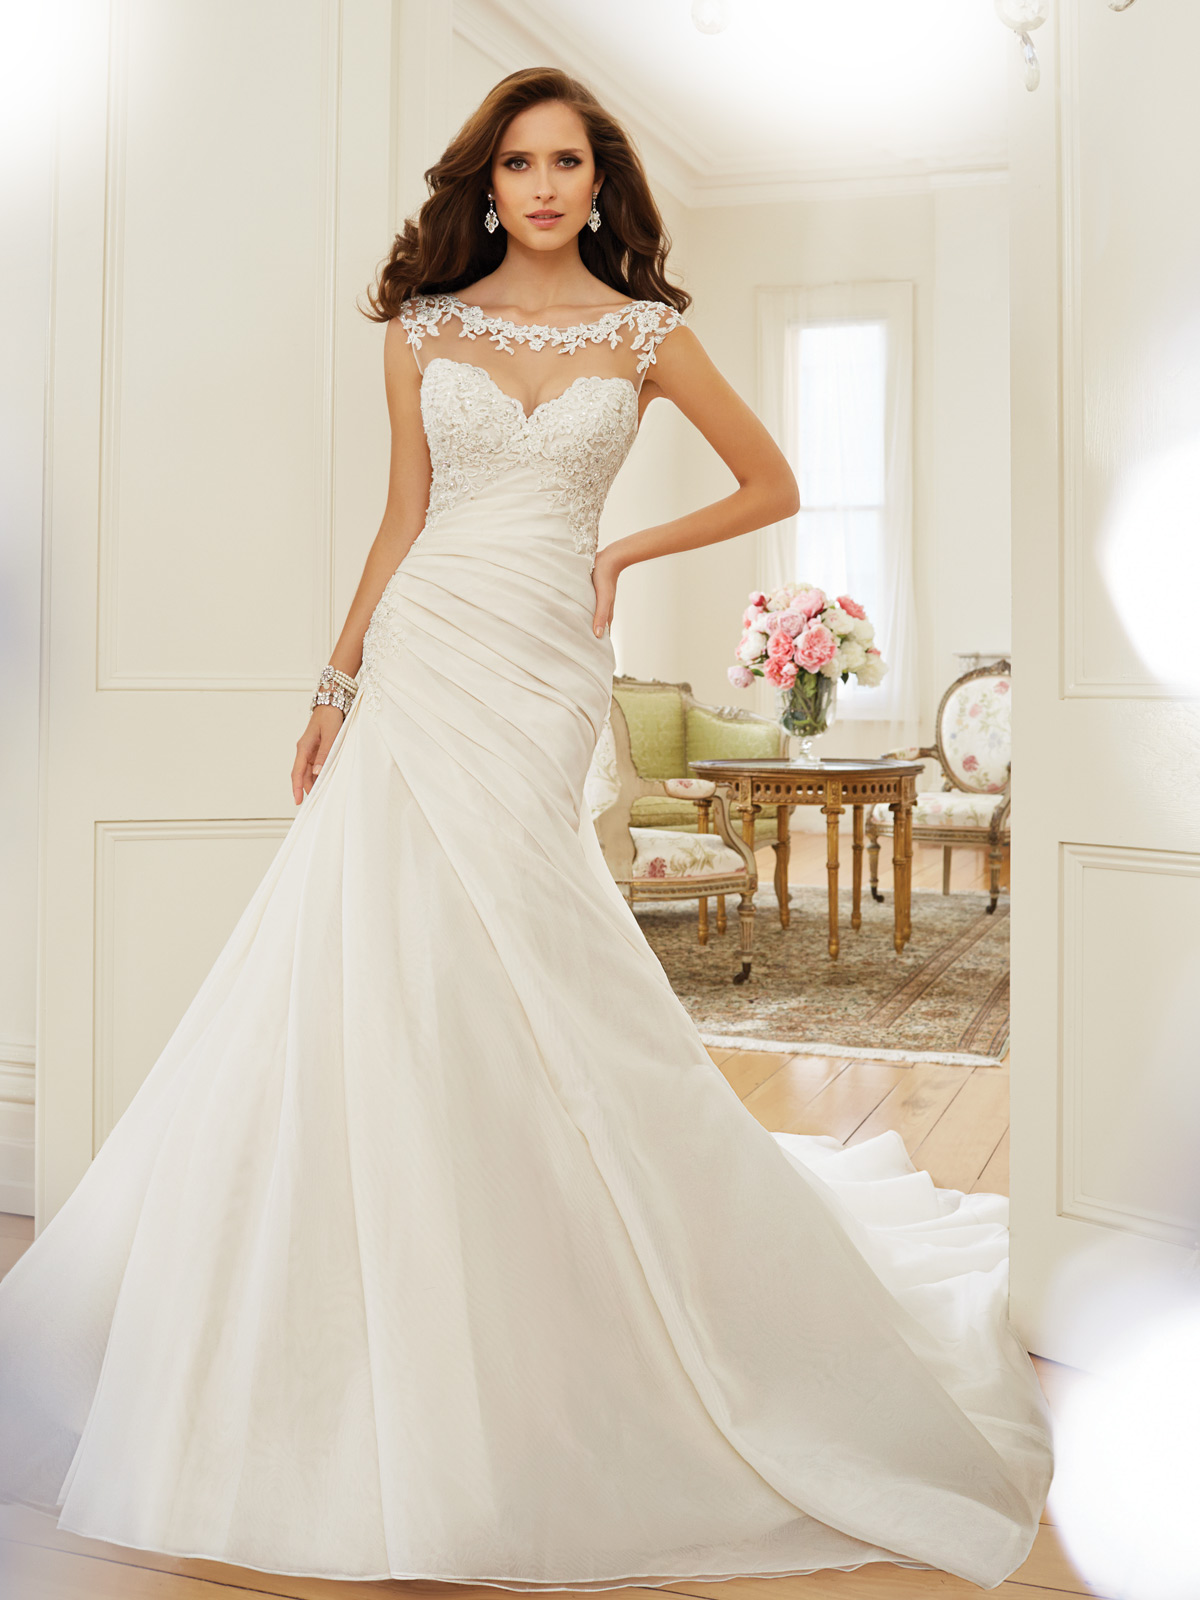 Sophia Tolli Spring 2015 Collection Y11568